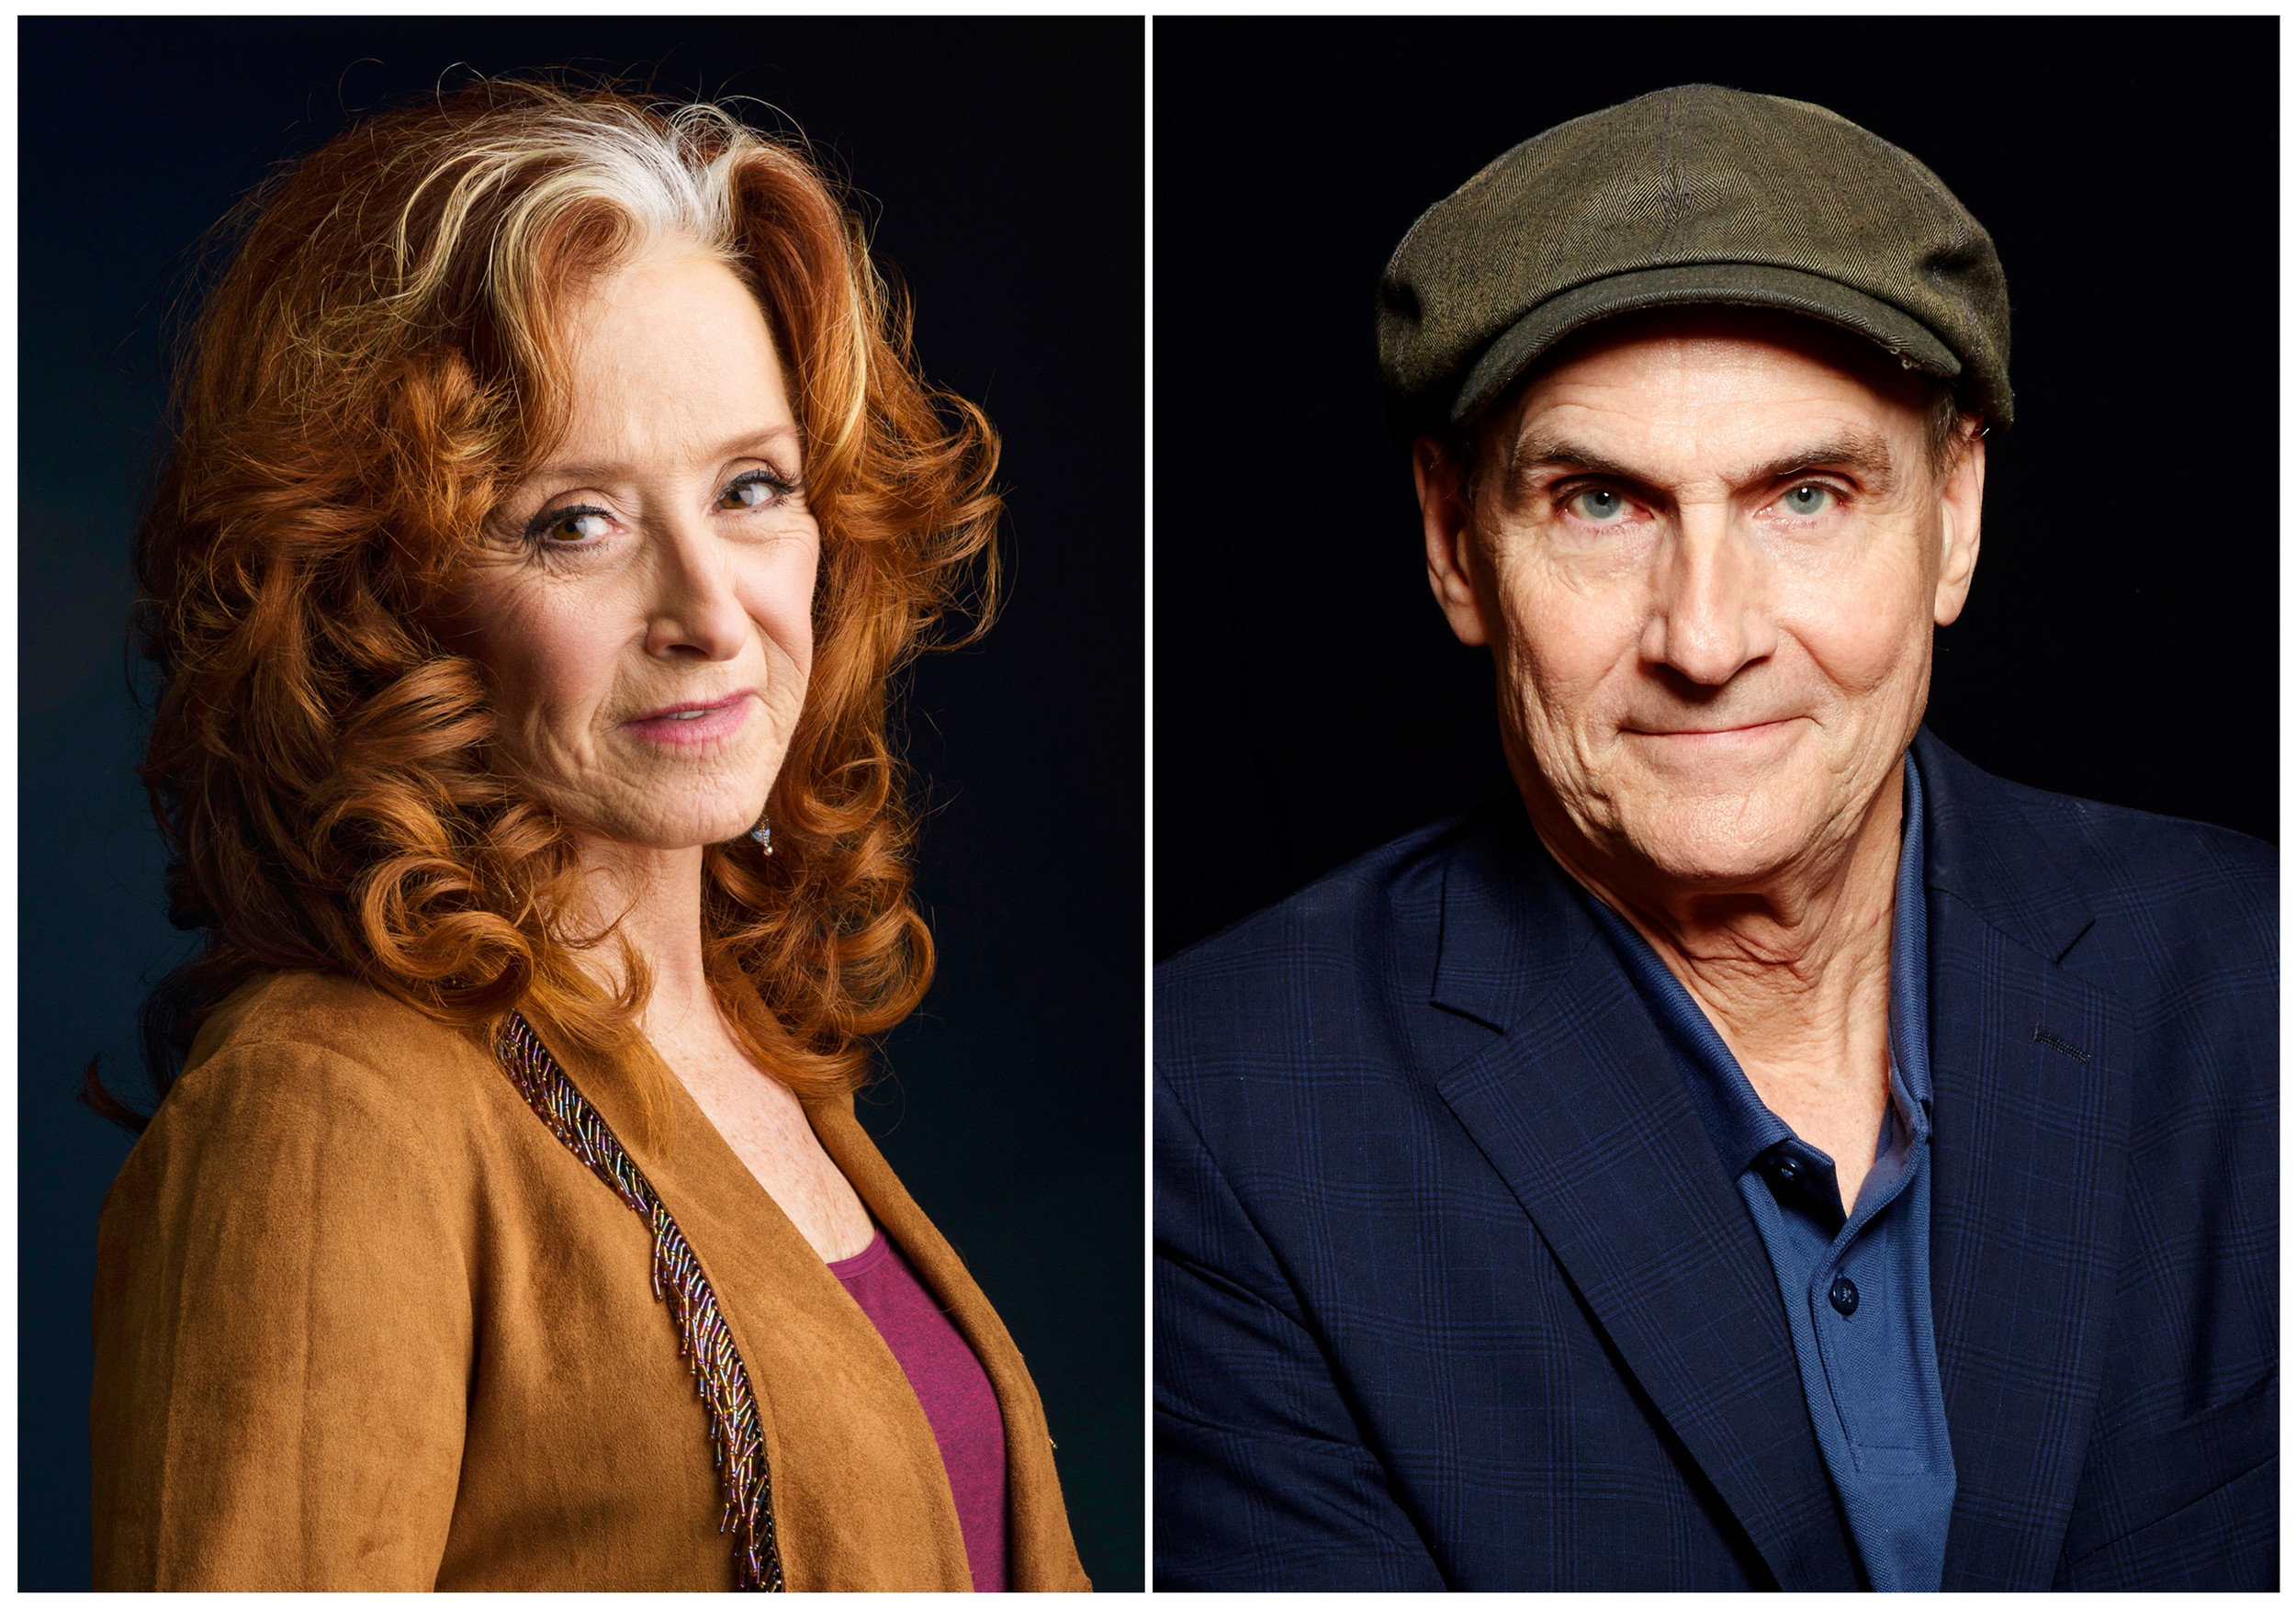 THE ASSOCIATED PRESSSinger Bonnie Raitt, left, and singer James Taylor are teaming up this summer for concerts.